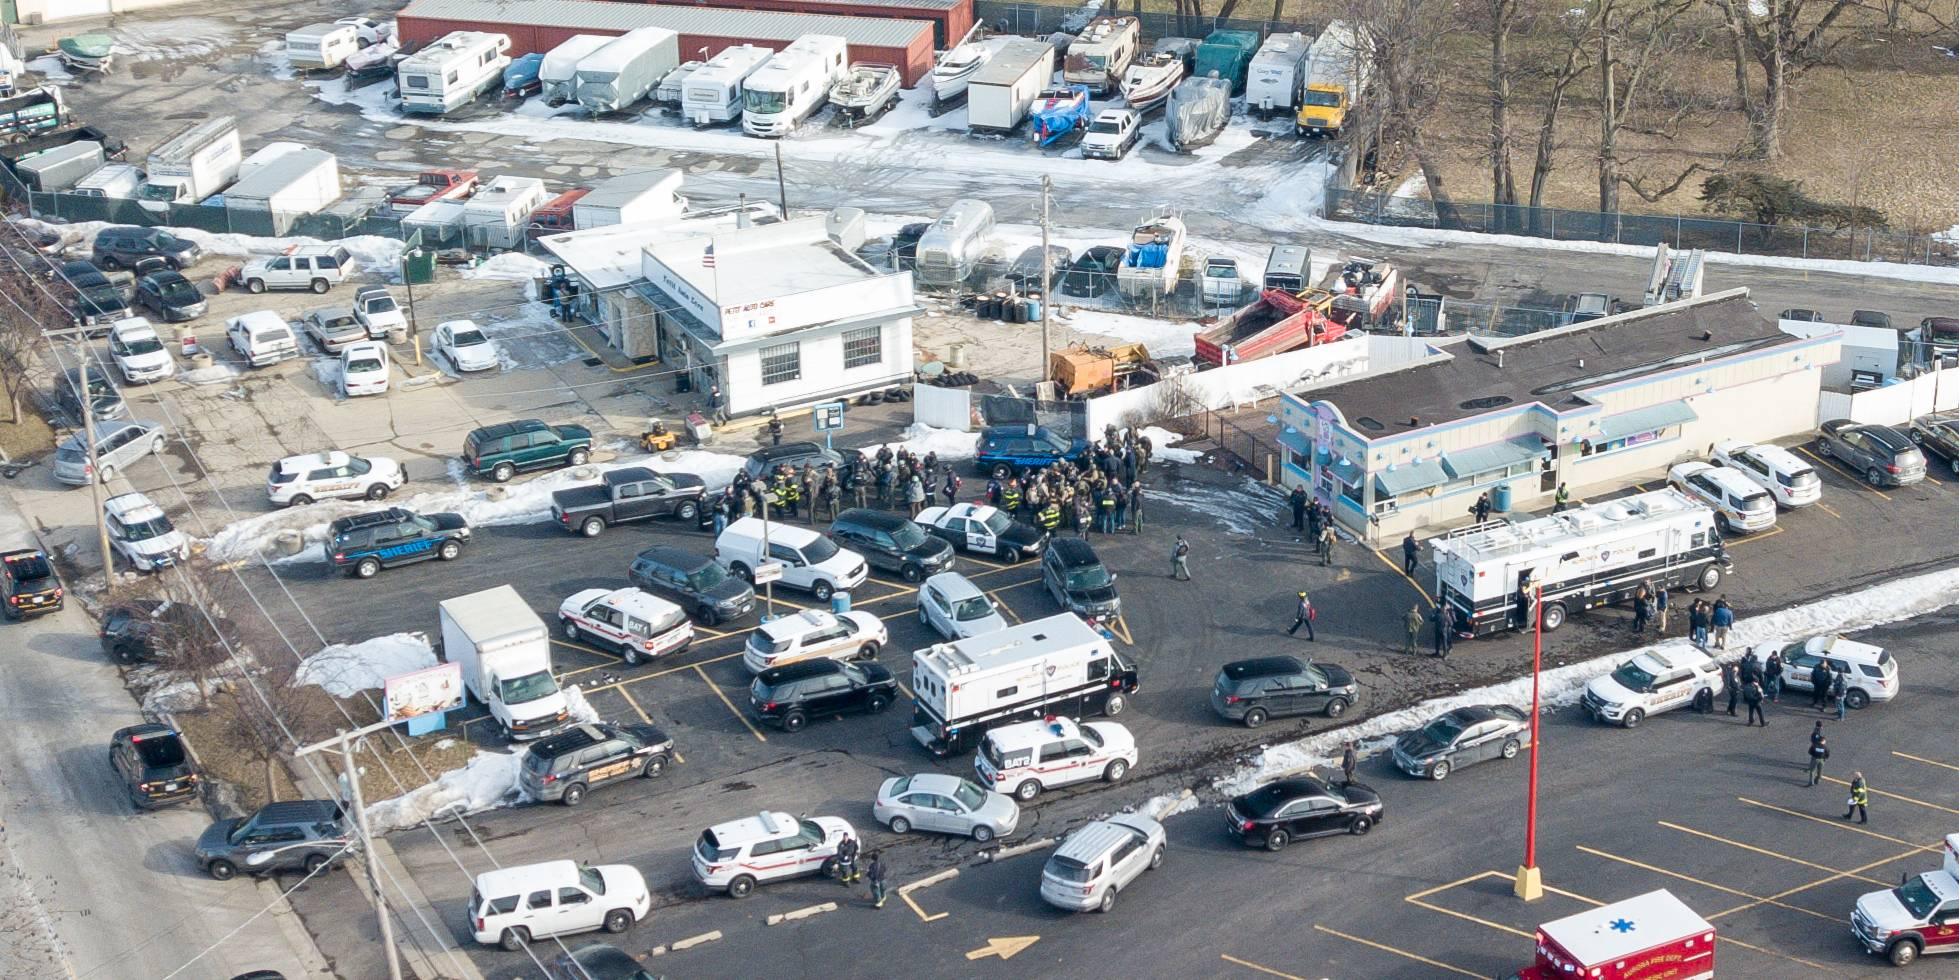 Five Henry Pratt warehouse workers were killed and five police officers and multiple civilians were wounded in an Aurora shooting Friday in an industrial area near Prairie and Highland avenues.